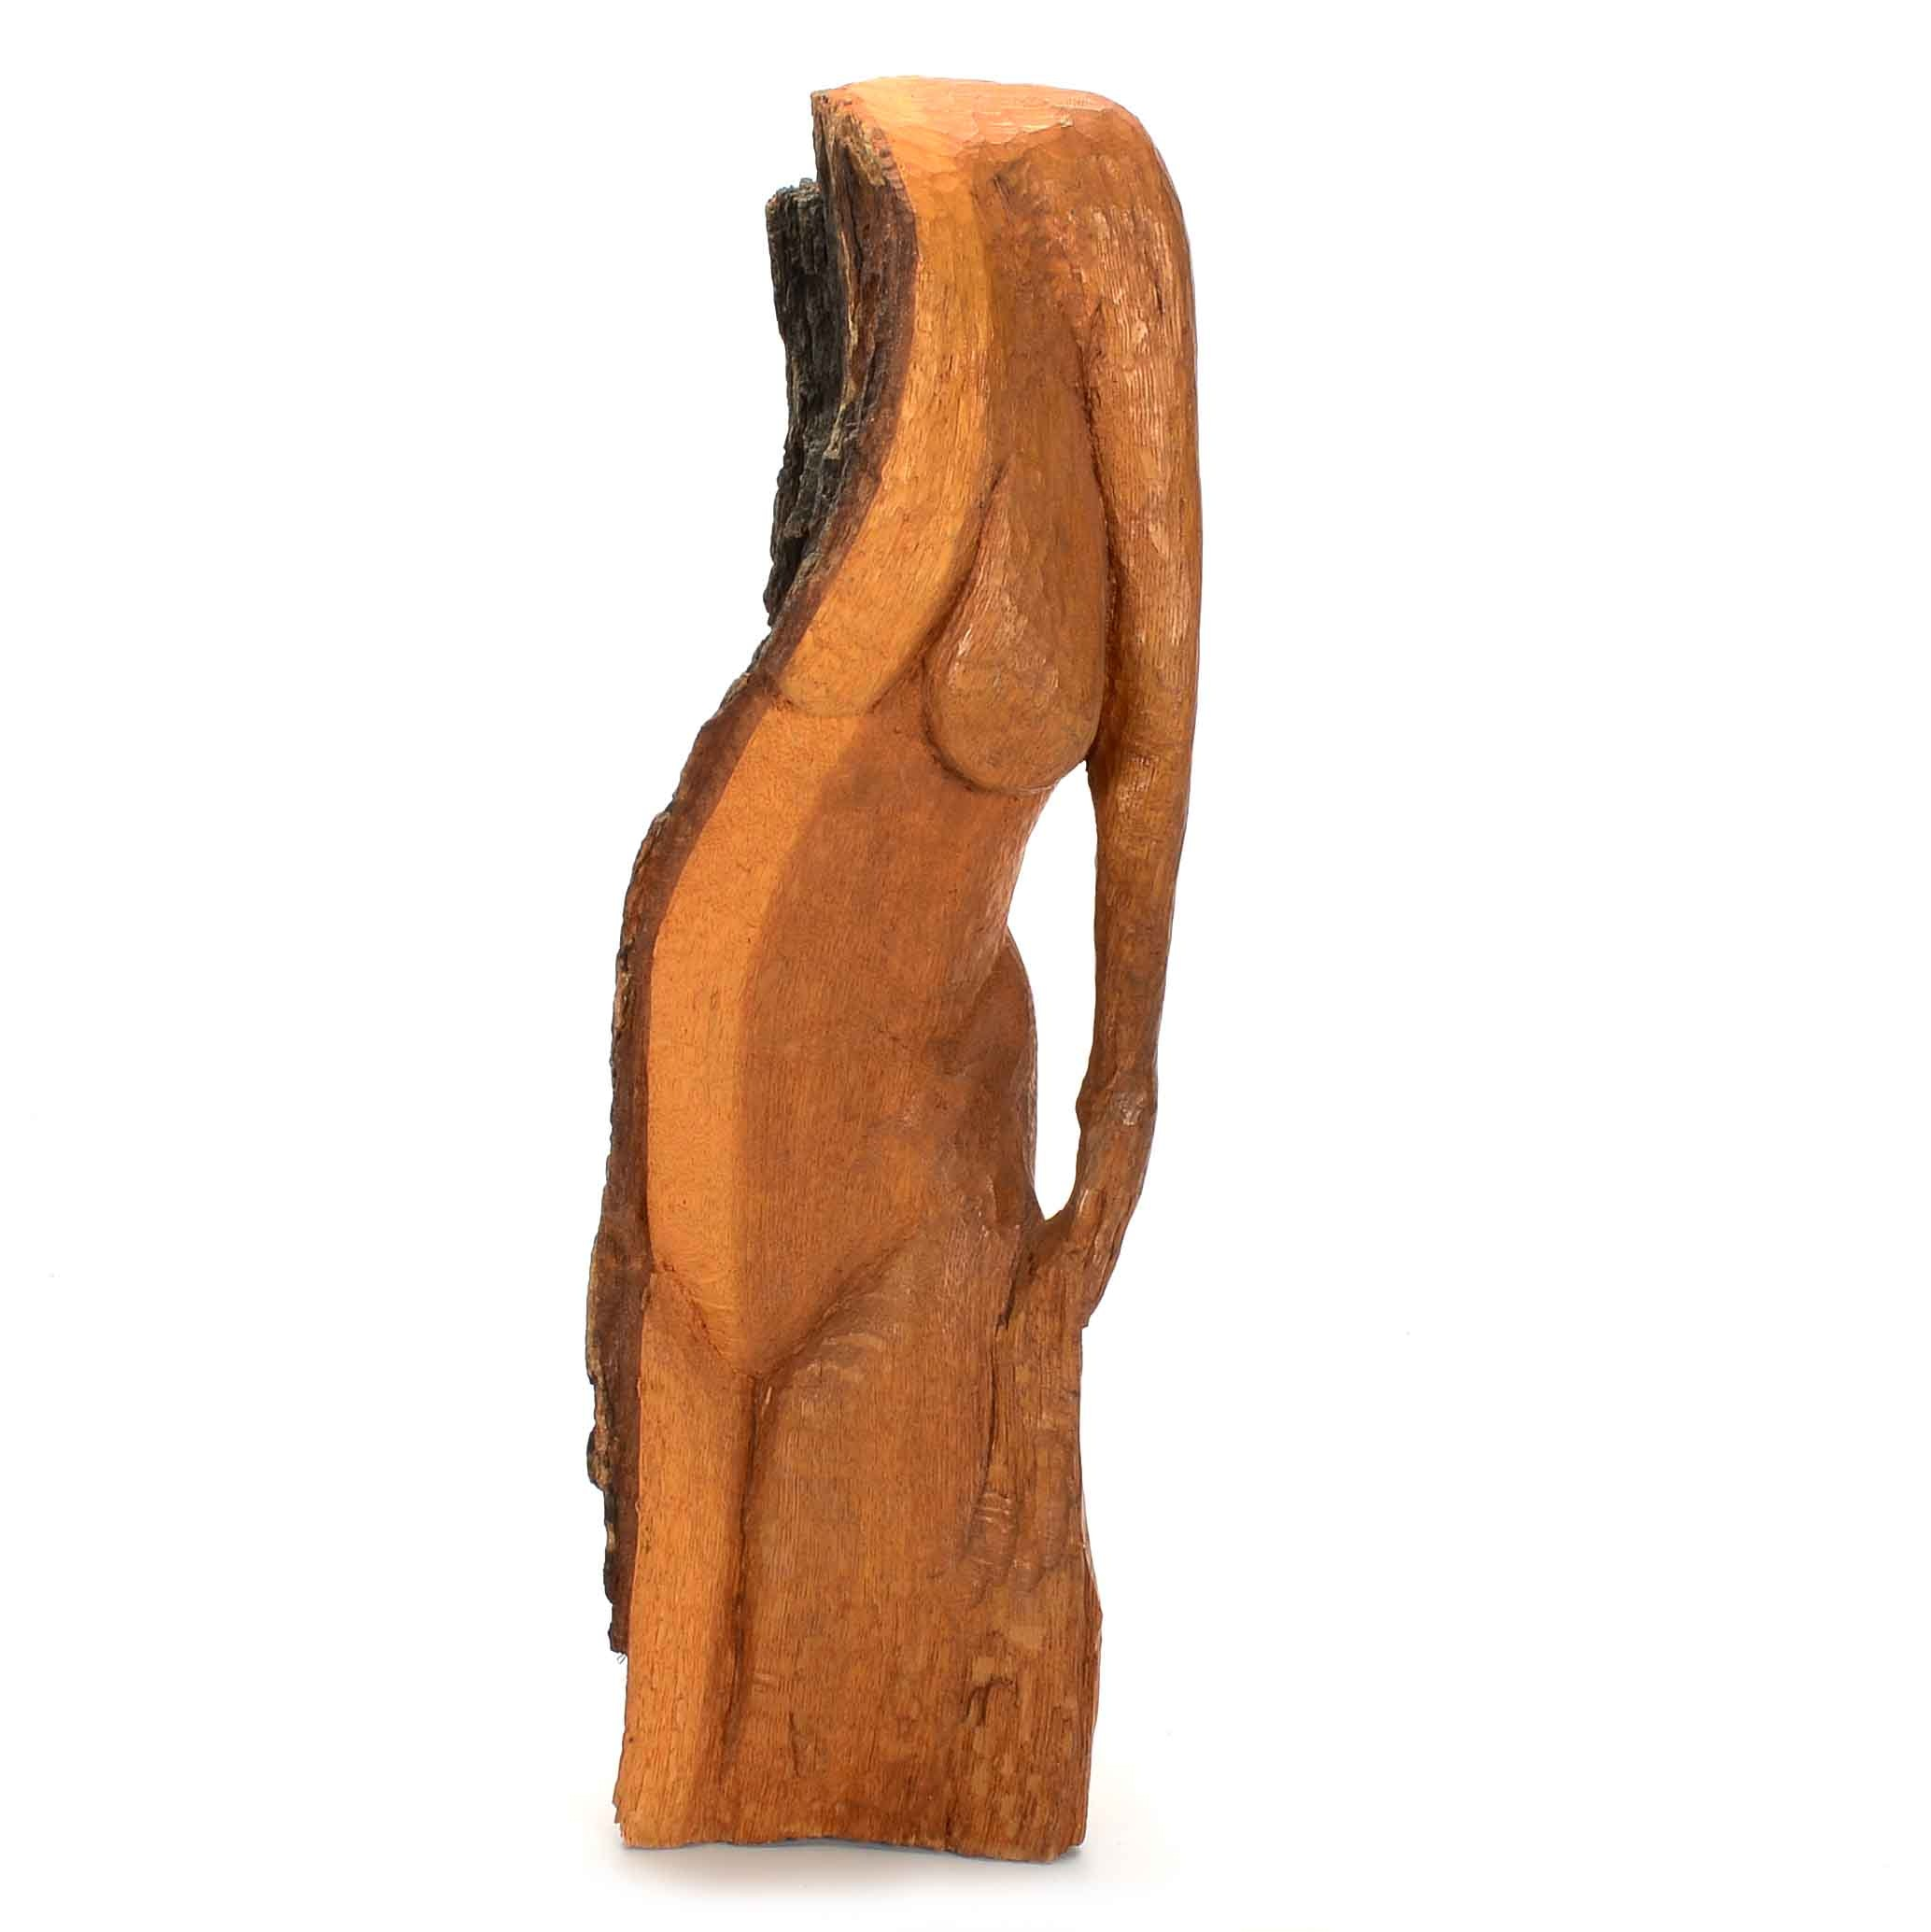 Dan Curtis 1960s Hand-Carved Salvaged Wood Figurative Sculpture